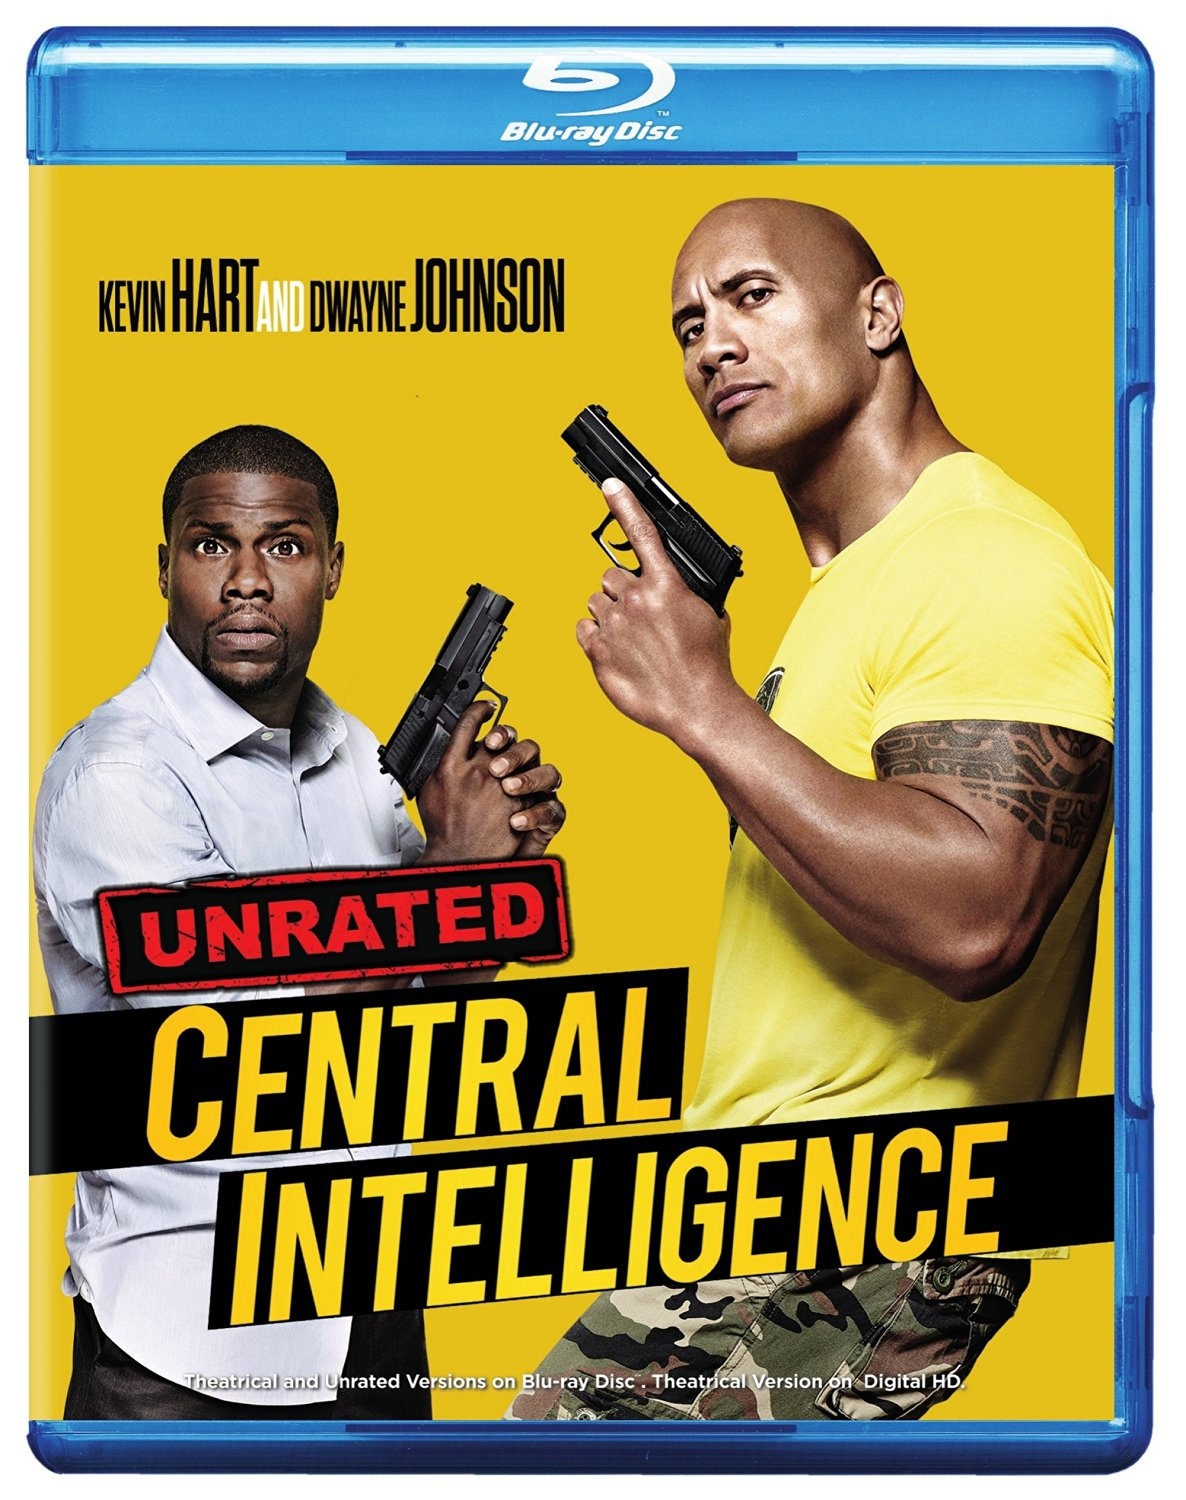 Central Intelligence incites the laughs: Blu-ray review